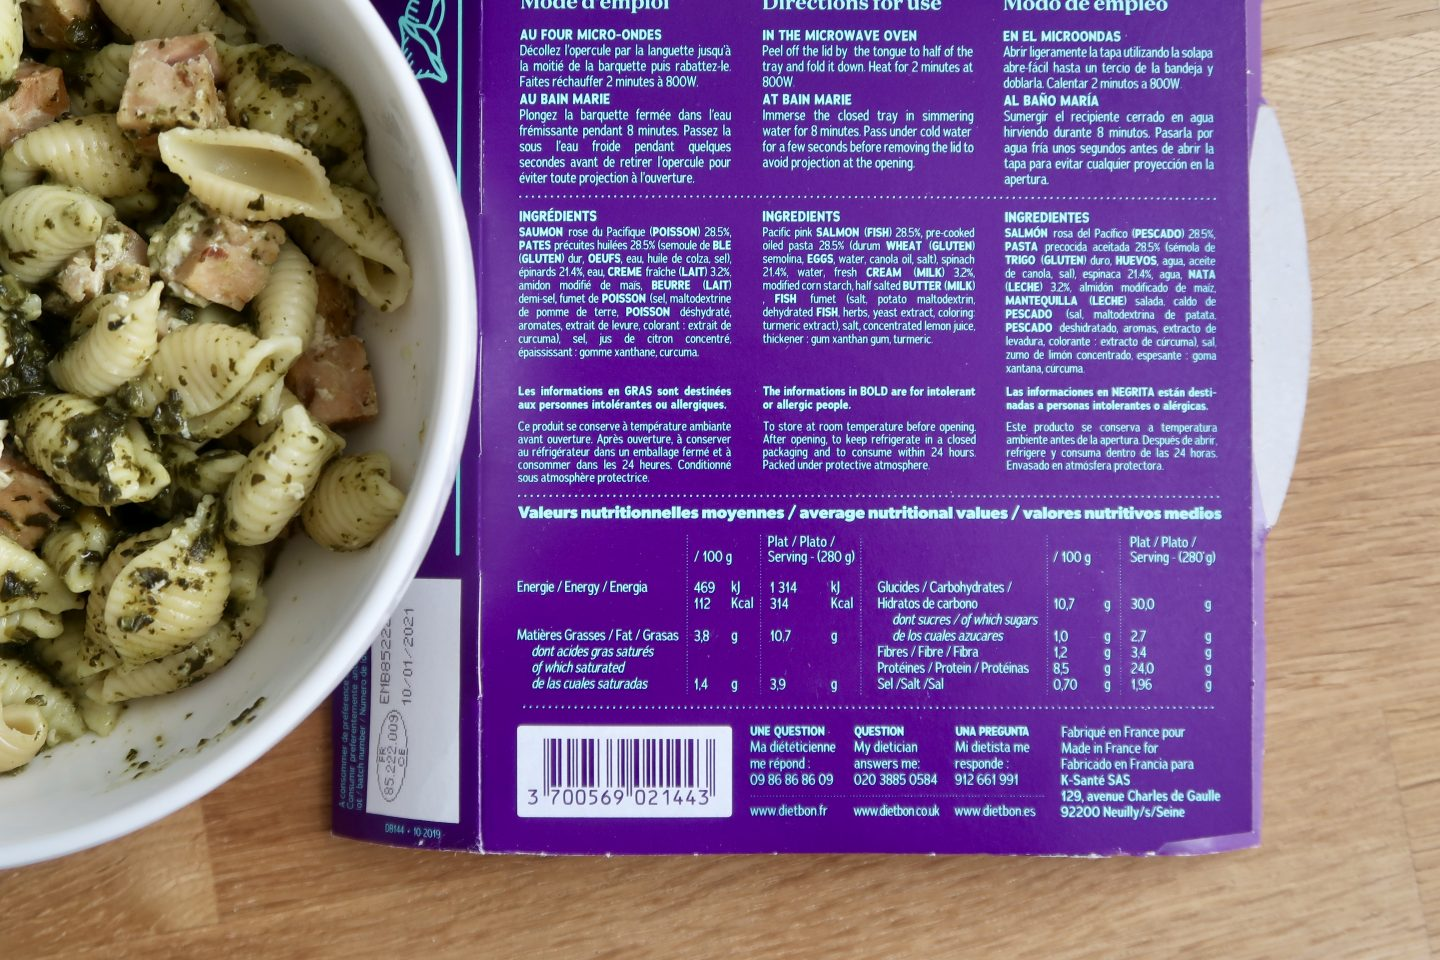 A close up on some food packaging showing the nutritional information, next to a bowl of pasta